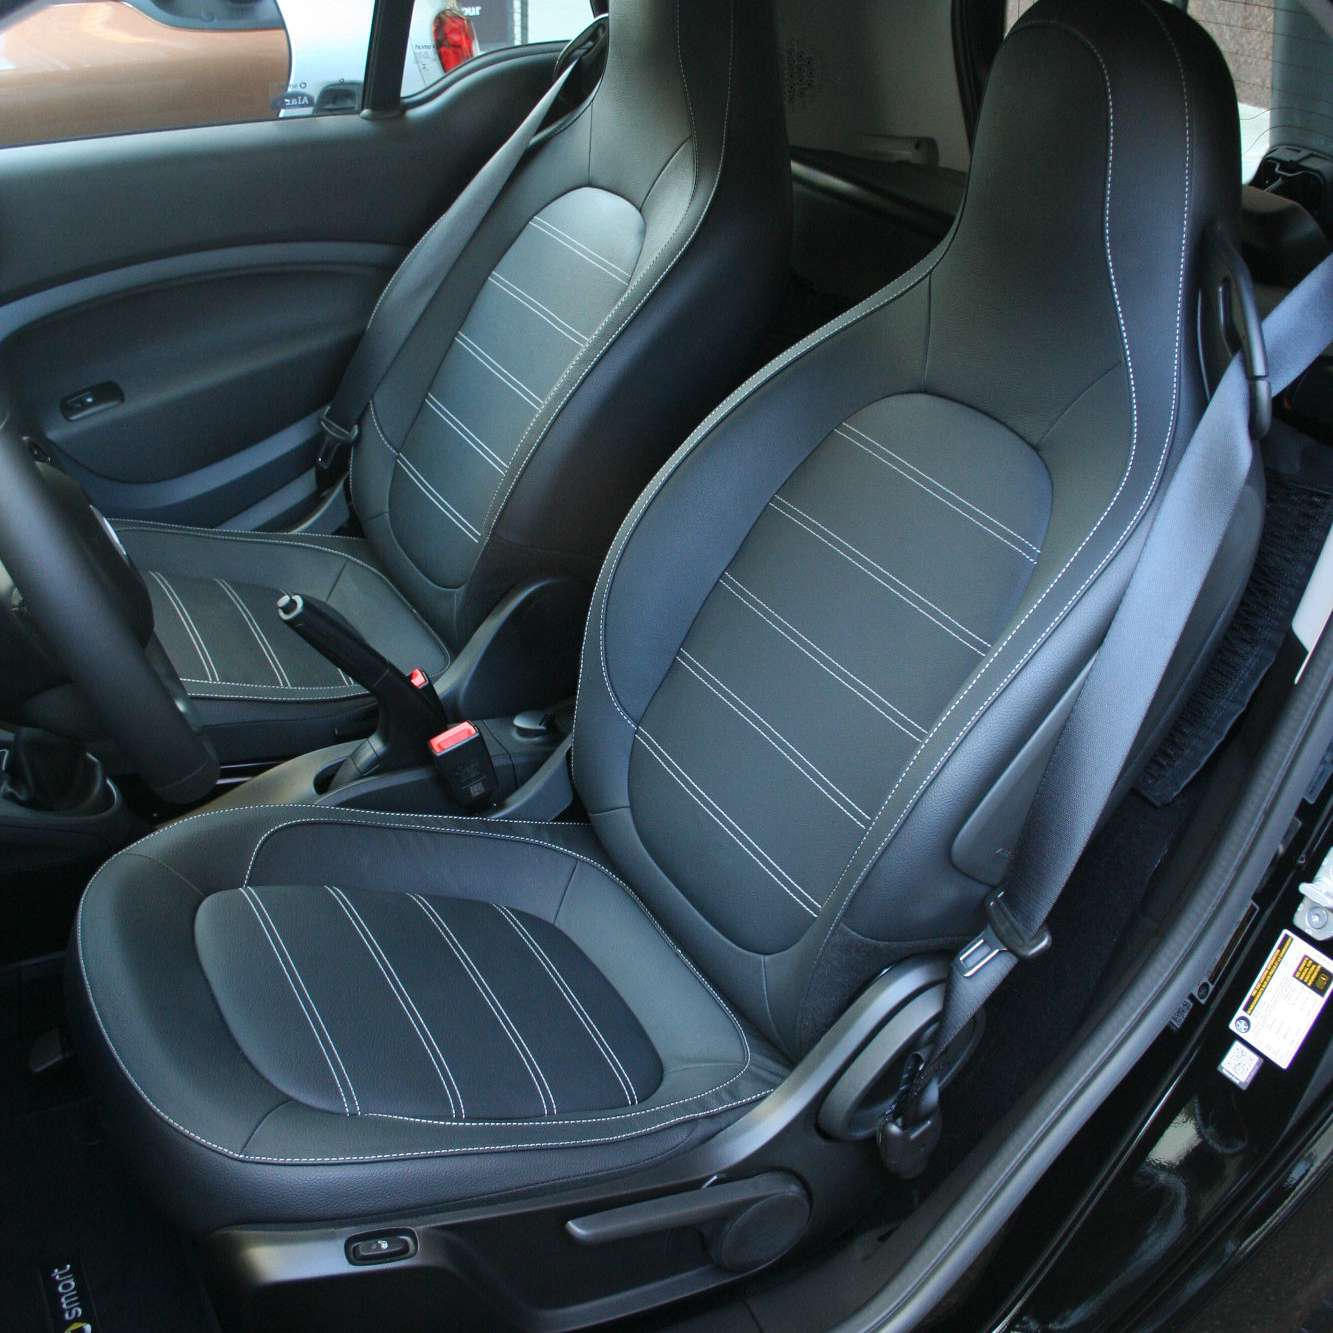 2016 Smart Fortwo Seats